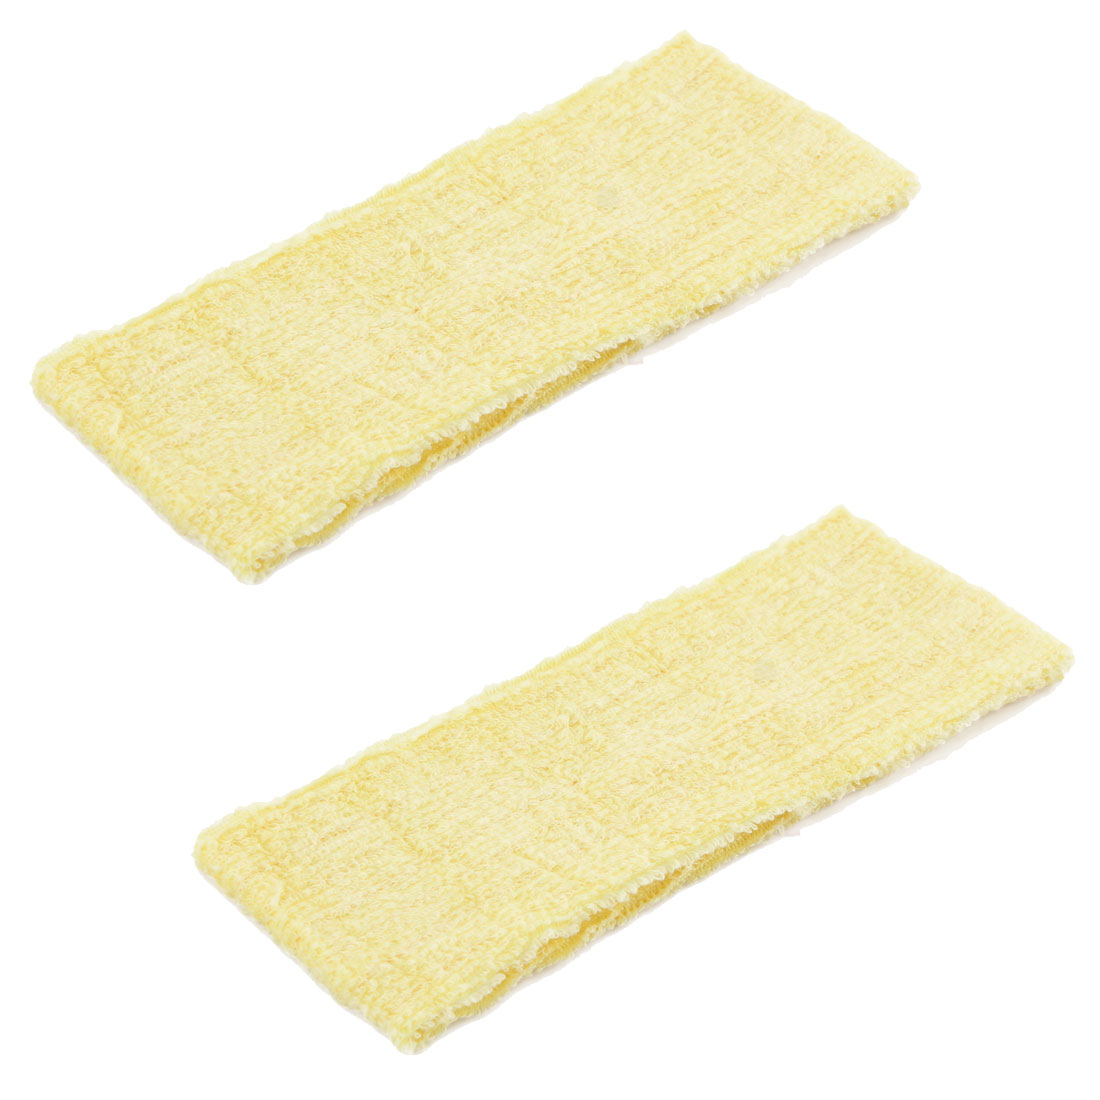 Household Bathroom Exercise Yoga Cotton Washing Headband Hair Band Wrap Yellow 2pcs